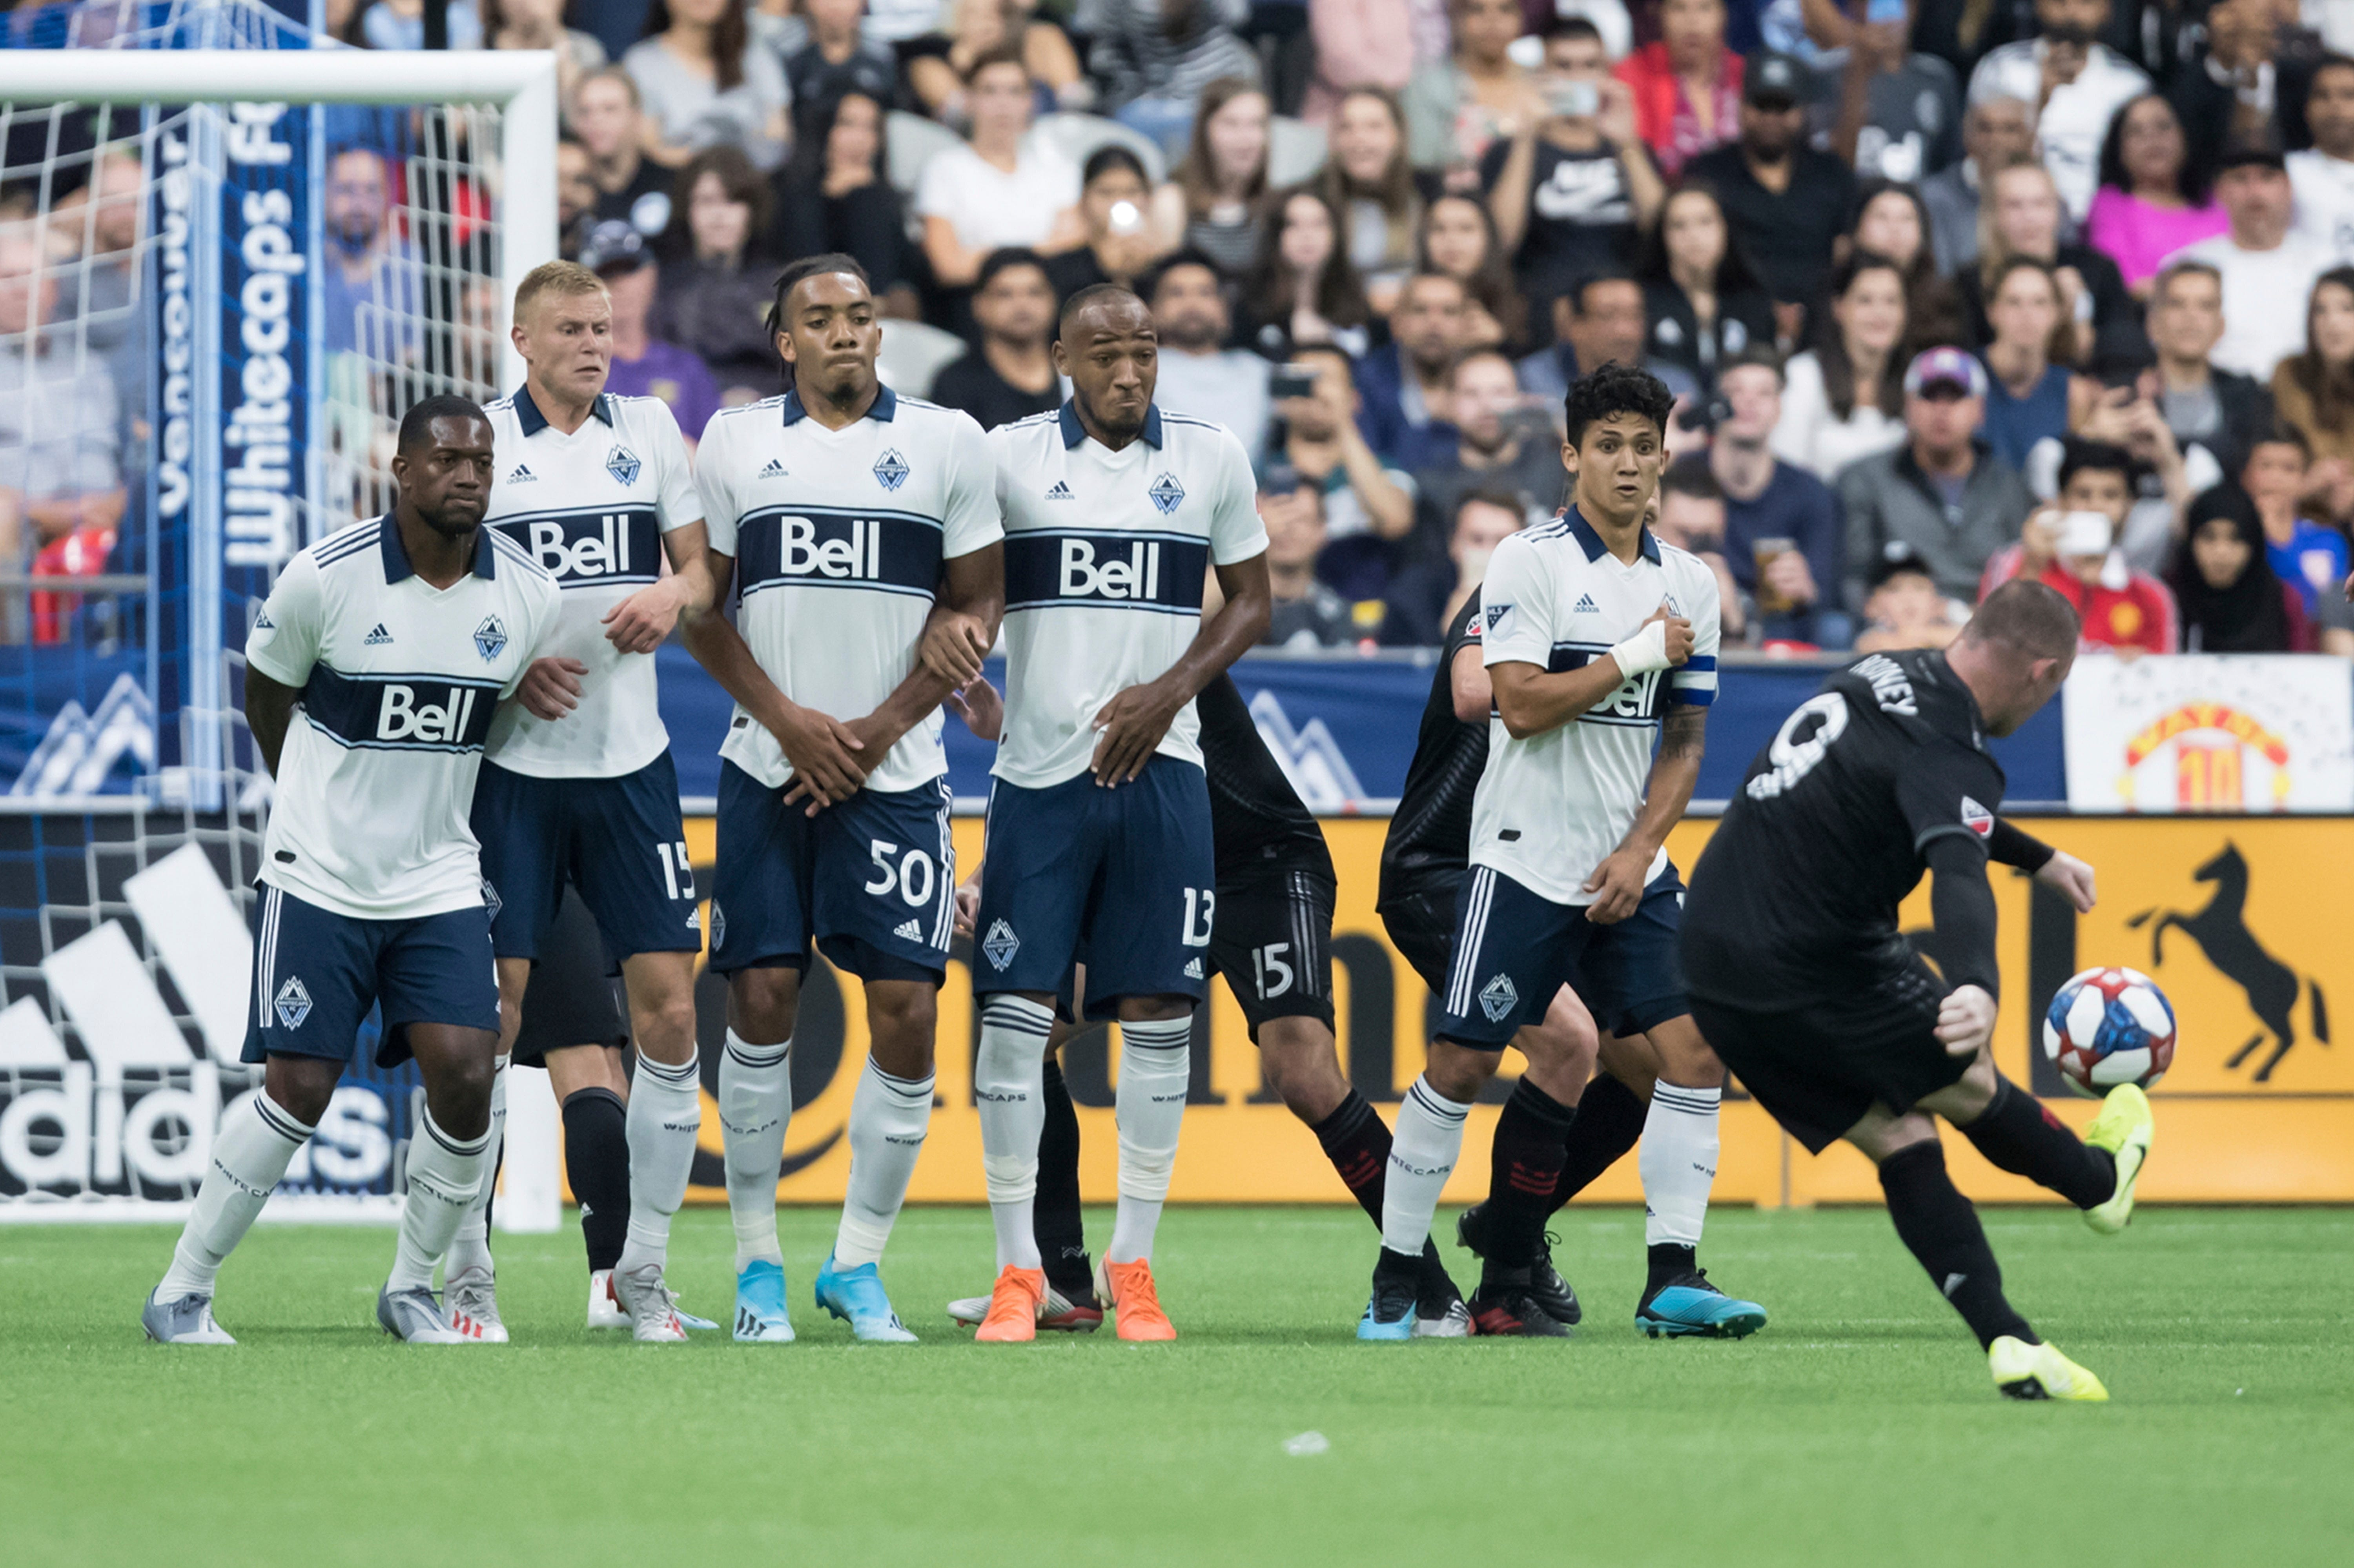 Yordy Reyna scores in Whitecaps' 1-0 victory over DC United